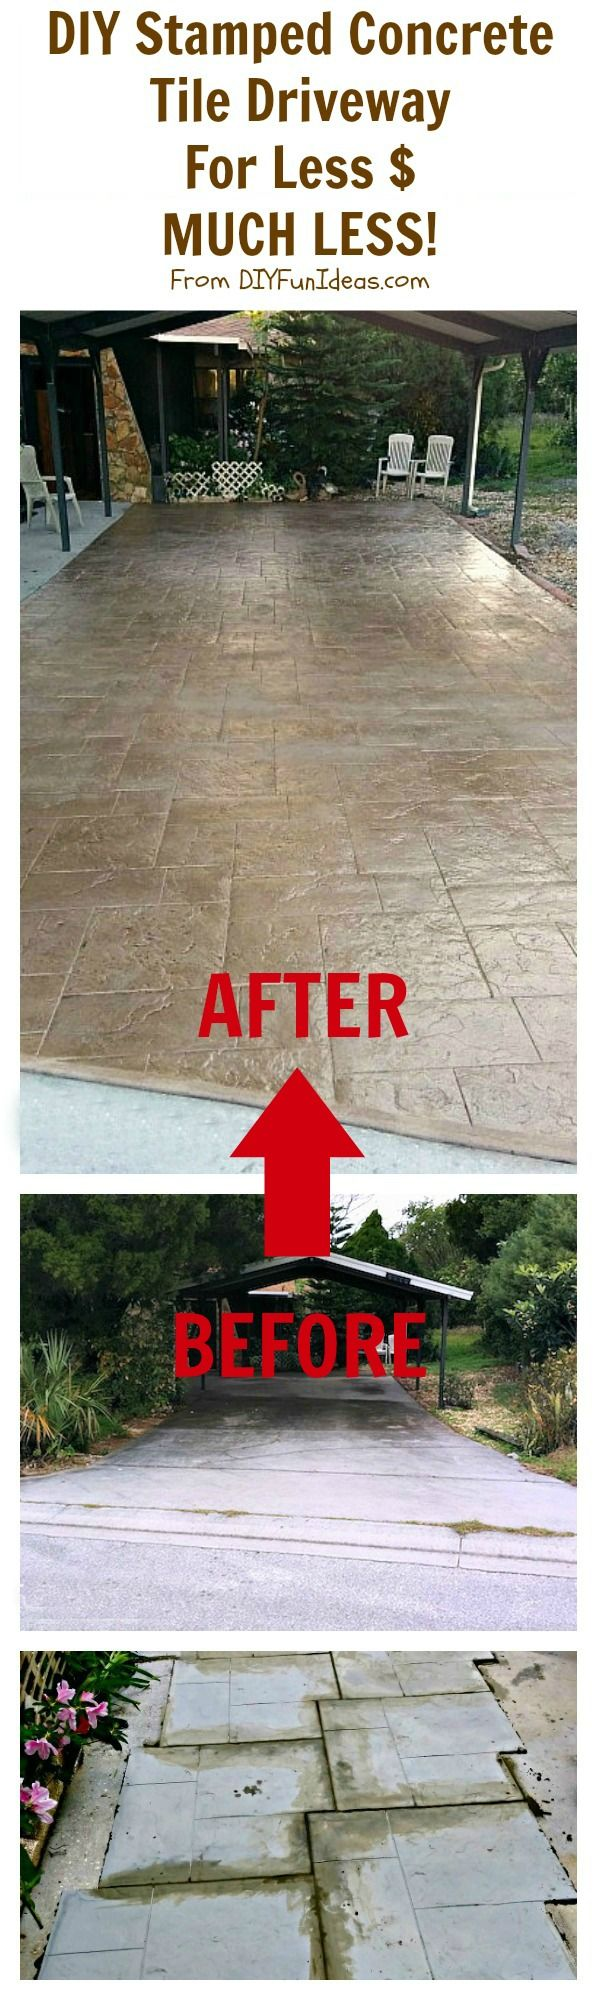 DIY STAMPED CONCRETE TILE DRIVEWAY FOR LESS $...MUCH LESS!!! Even a novice can do this.